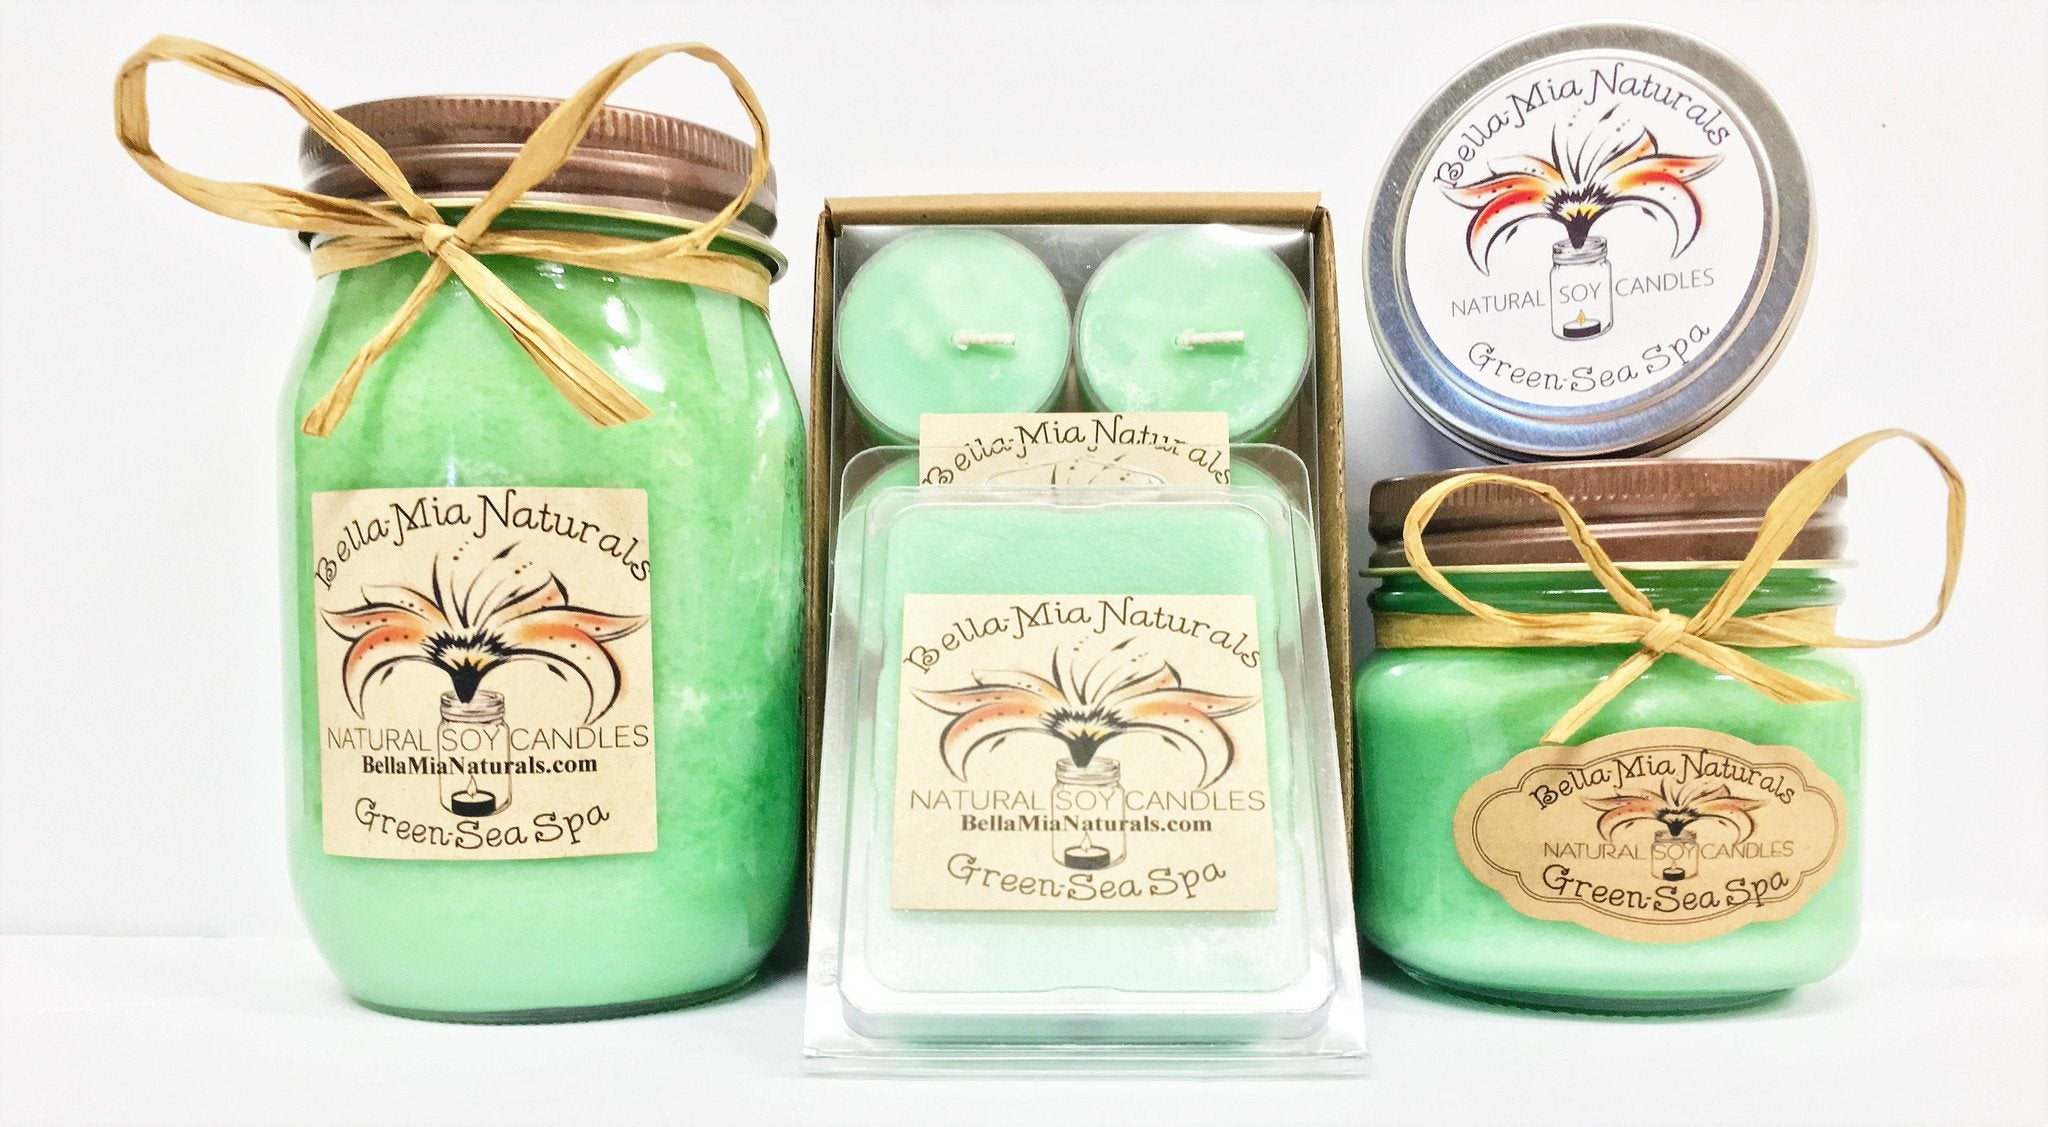 Green-Sea Spa Natural Hand Poured Soy Candles -  - Bella-Mia Naturals All Natural Soy Candles & Lip Balms - 1